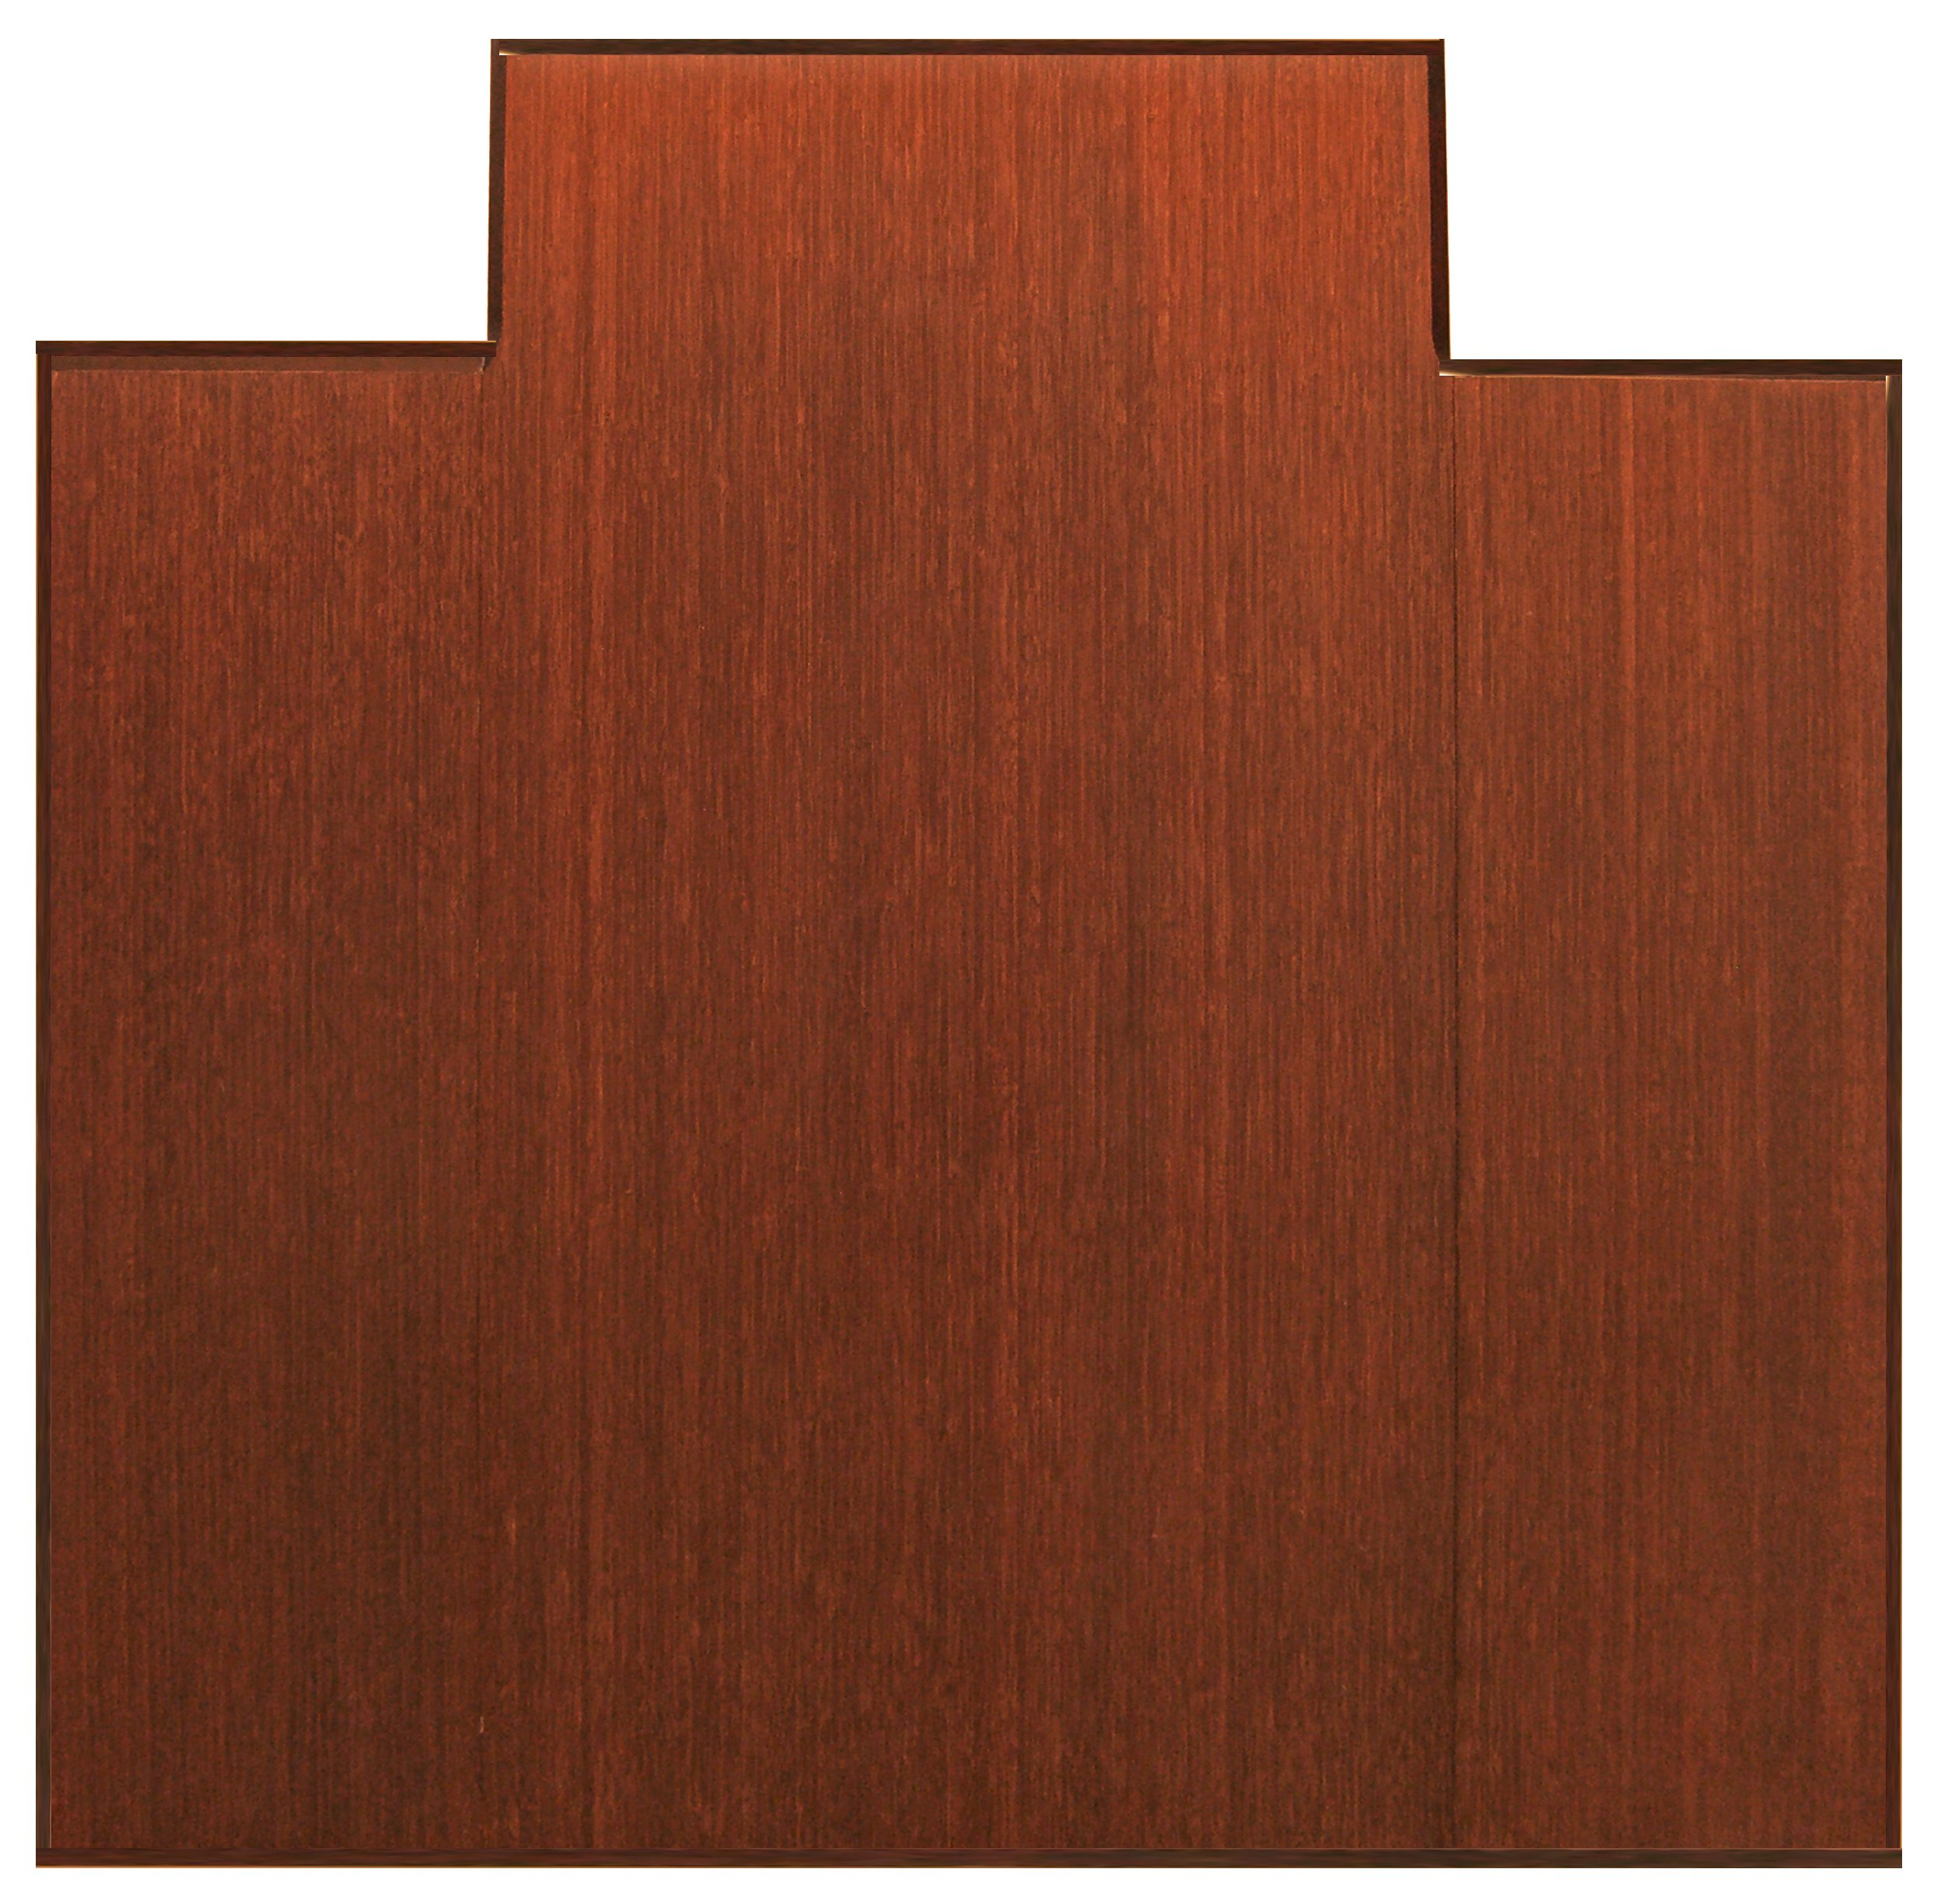 Anji Mountain Bamboo Chairmat & Rug Co. Tri-Fold Bamboo Chairmat, 47-Inch-by-51-Inch, 12mm Thick, With Lip, Dark Cherry